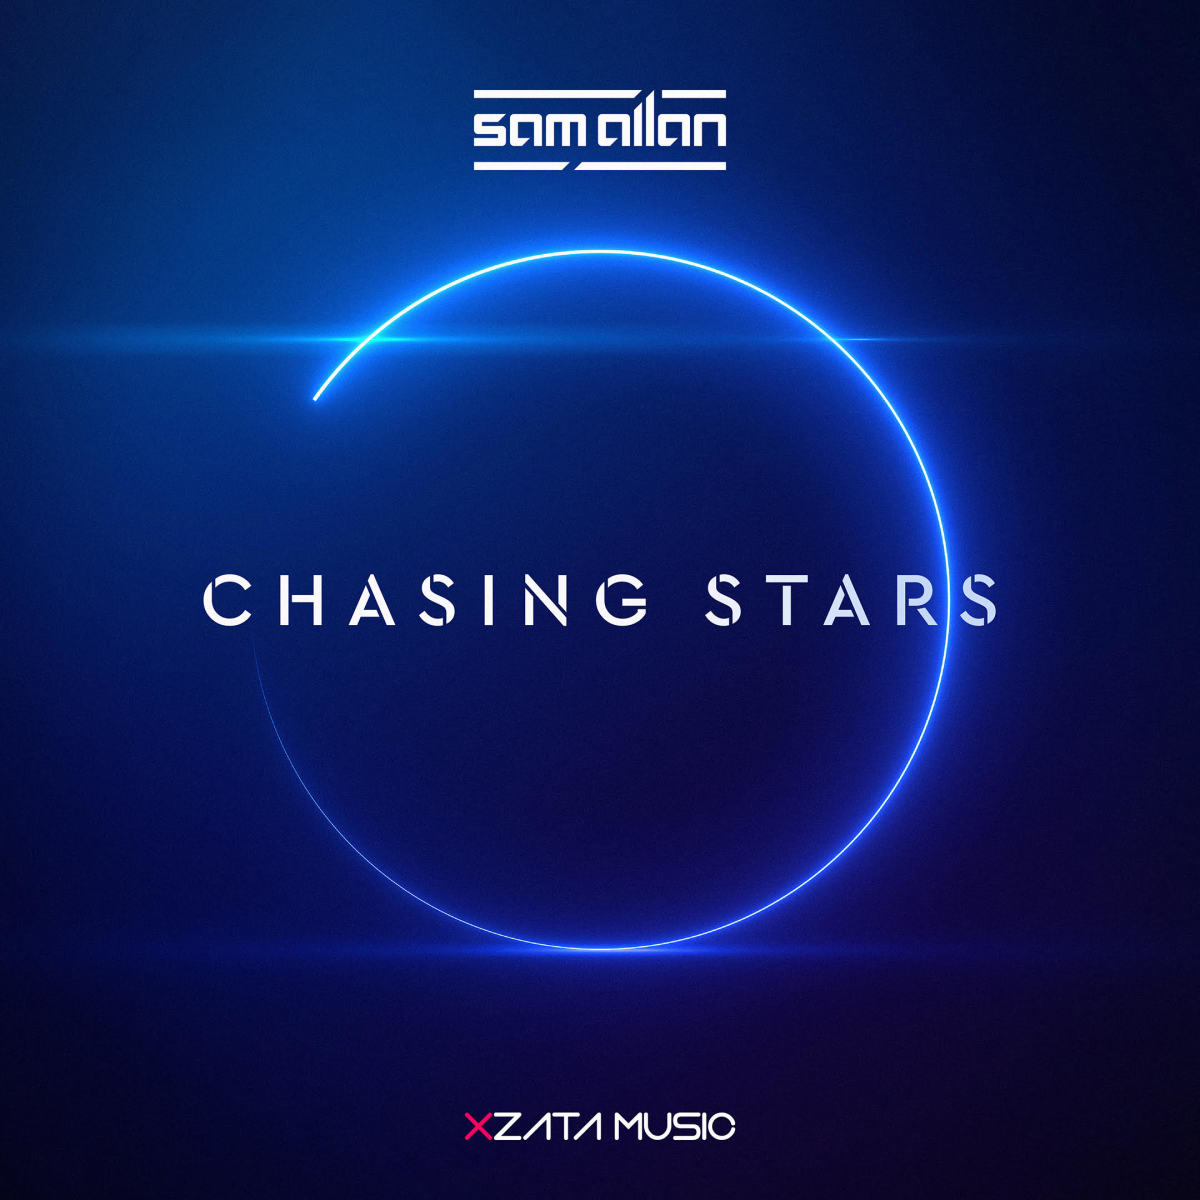 Sam Allan - Chasing Stars (ALBUM ARTWORK)